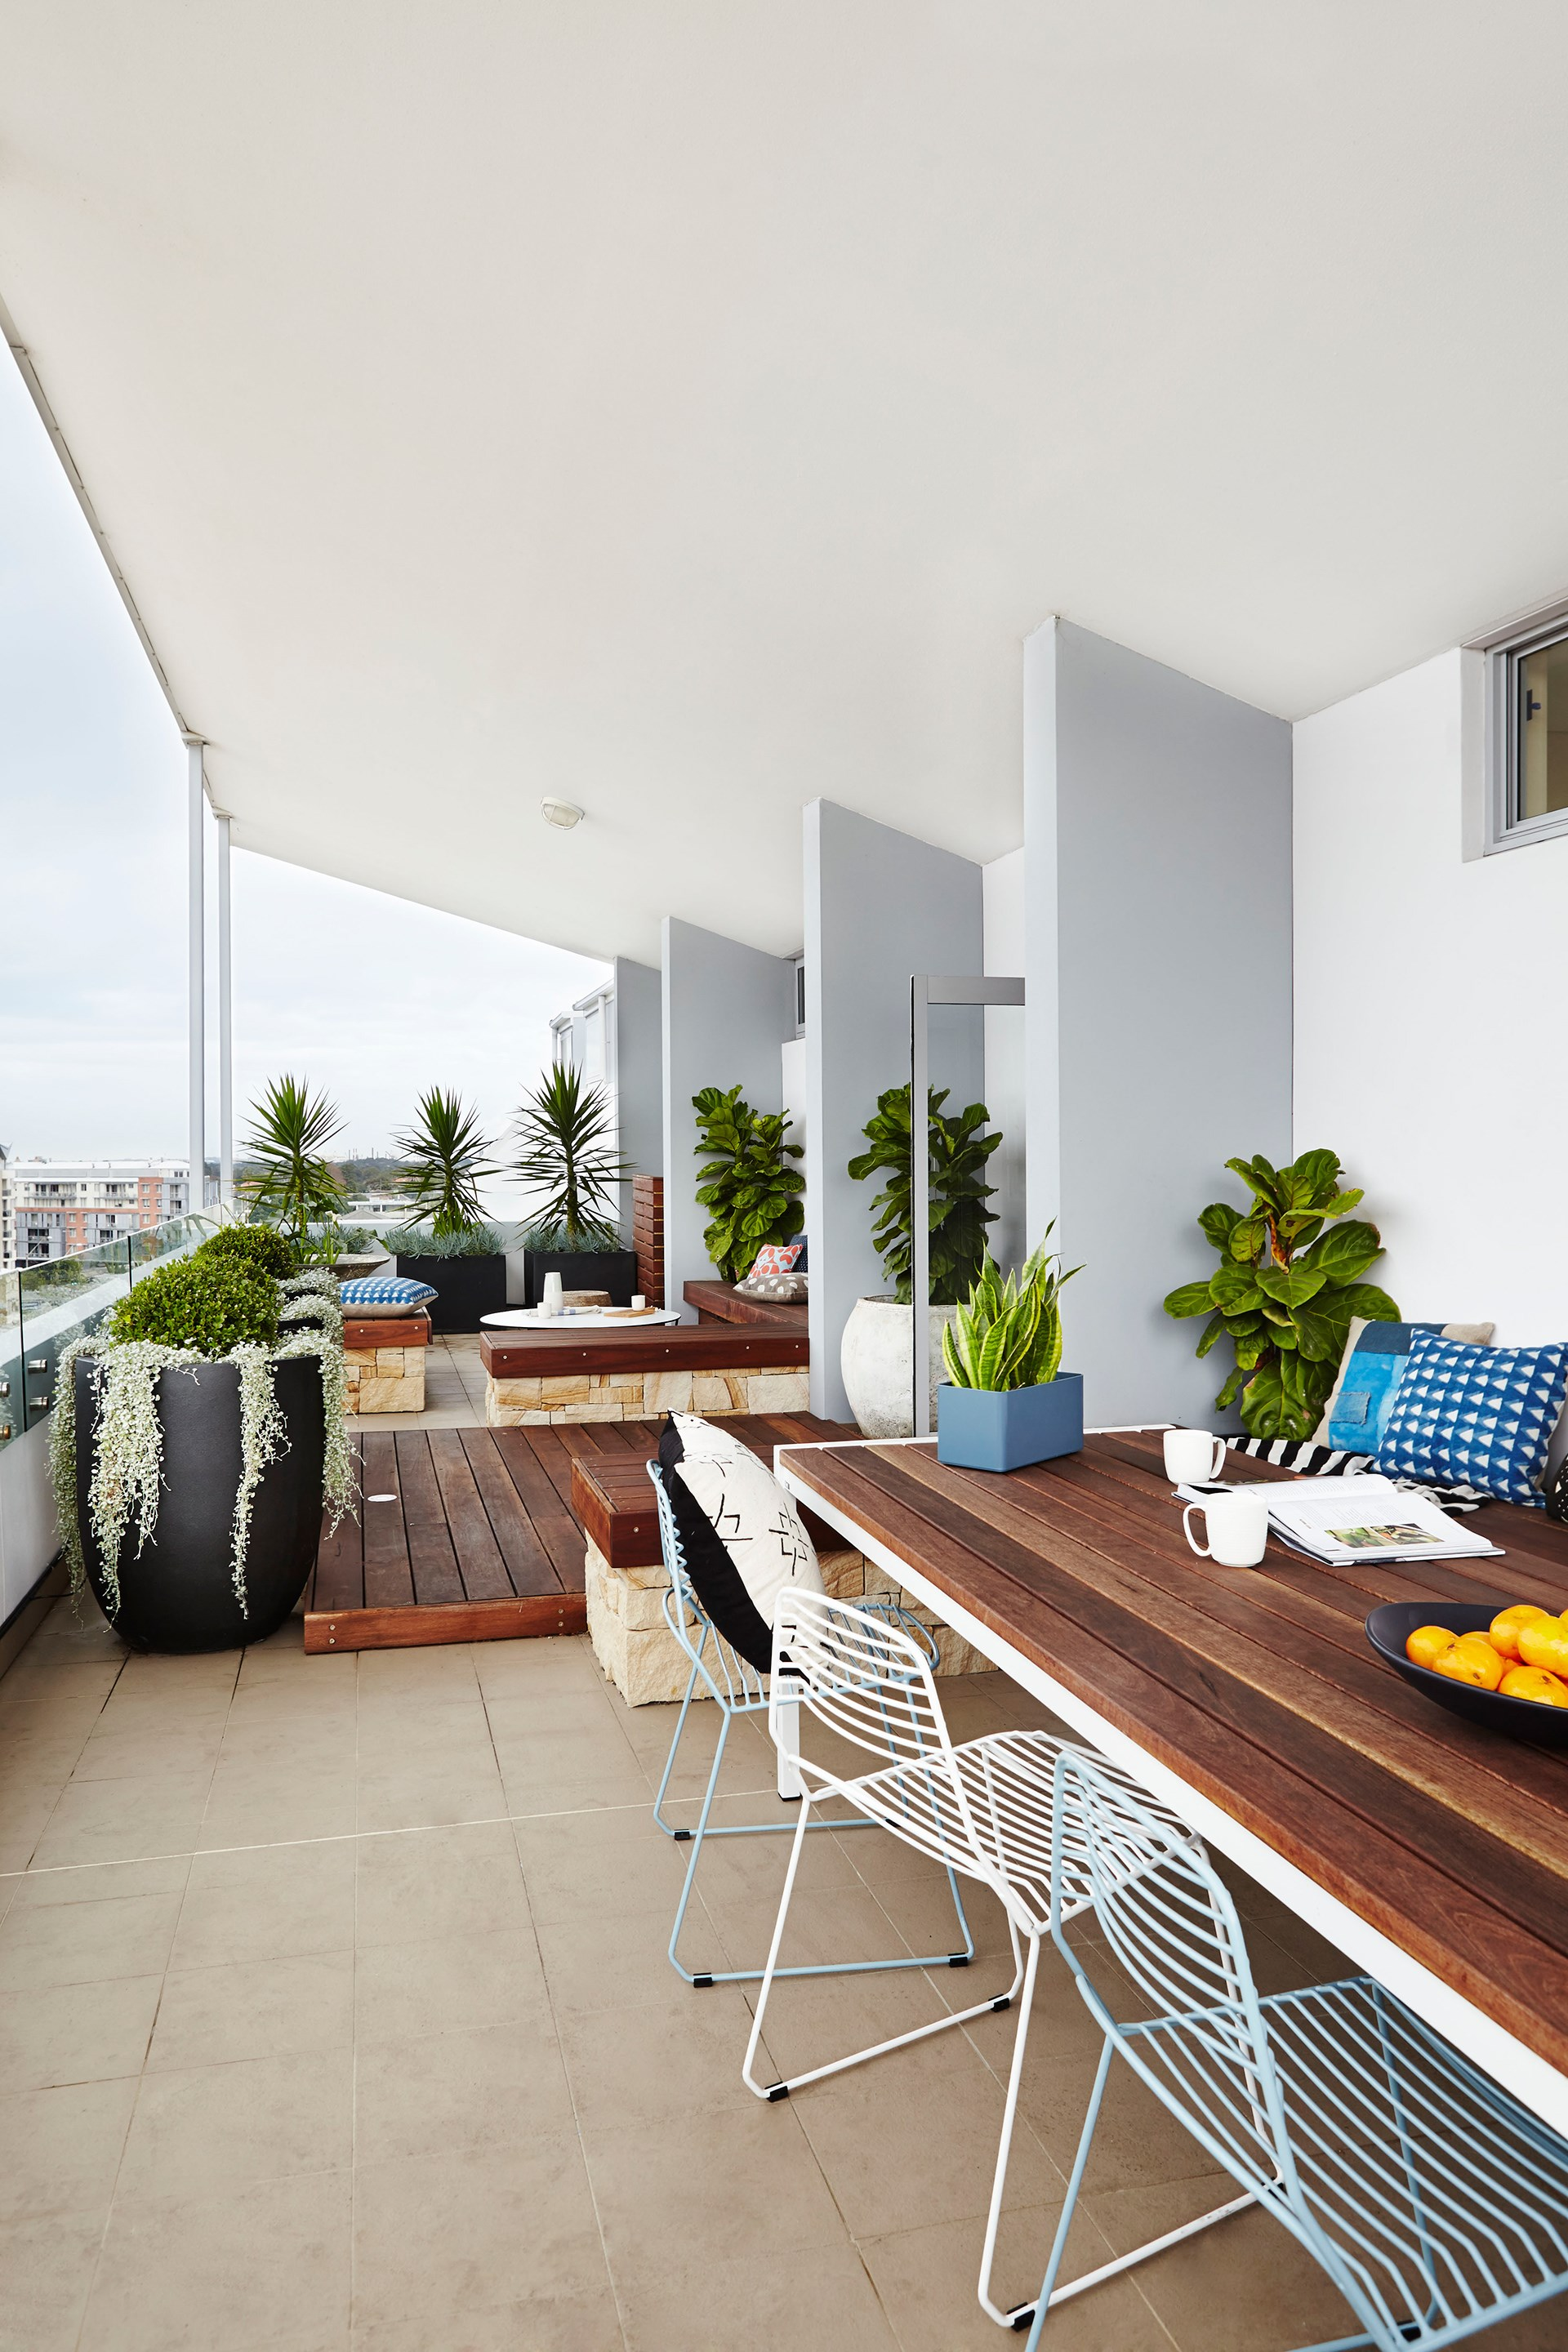 """You don't need a big backyard to be able to hold regular social gatherings. A thoughtfully designed balcony separated into dining and hang-out zones can be just as appealing. Read more about the design of this [garden balcony](http://www.homestolove.com.au/gallery-the-ultimate-garden-balcony-2511/?utm_campaign=supplier/